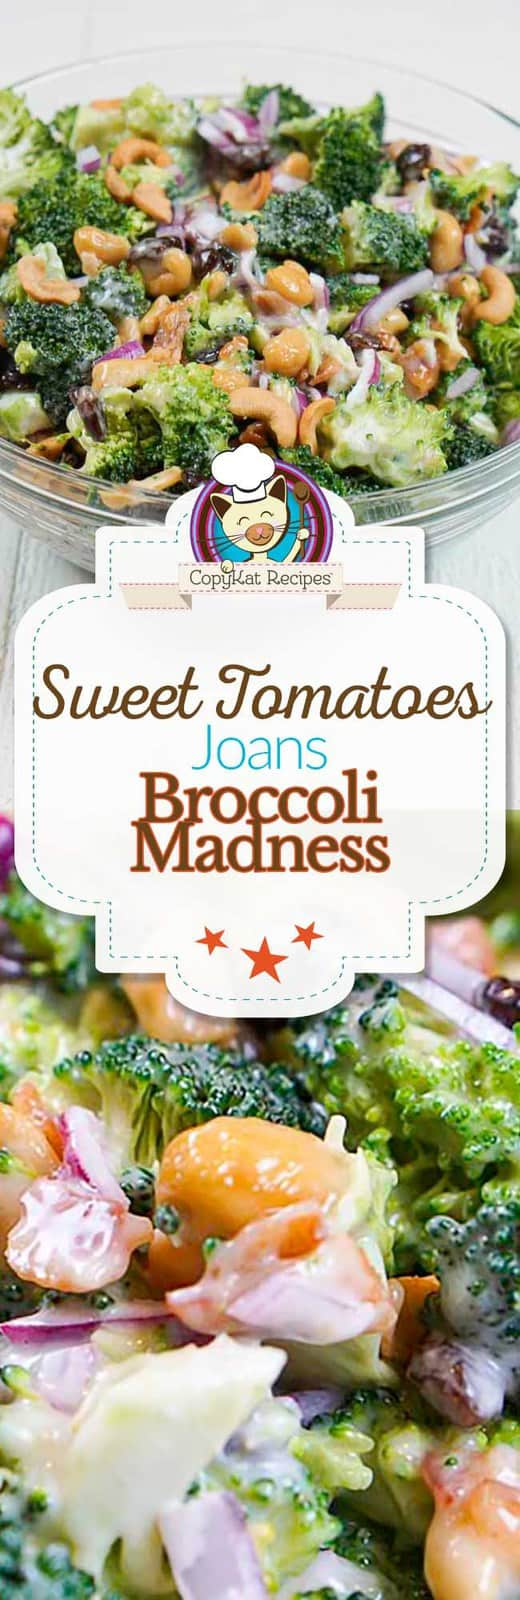 You can make Sweet Tomatoes Joan's Broccoli Madness Salad at home with this easy copycat recipe.